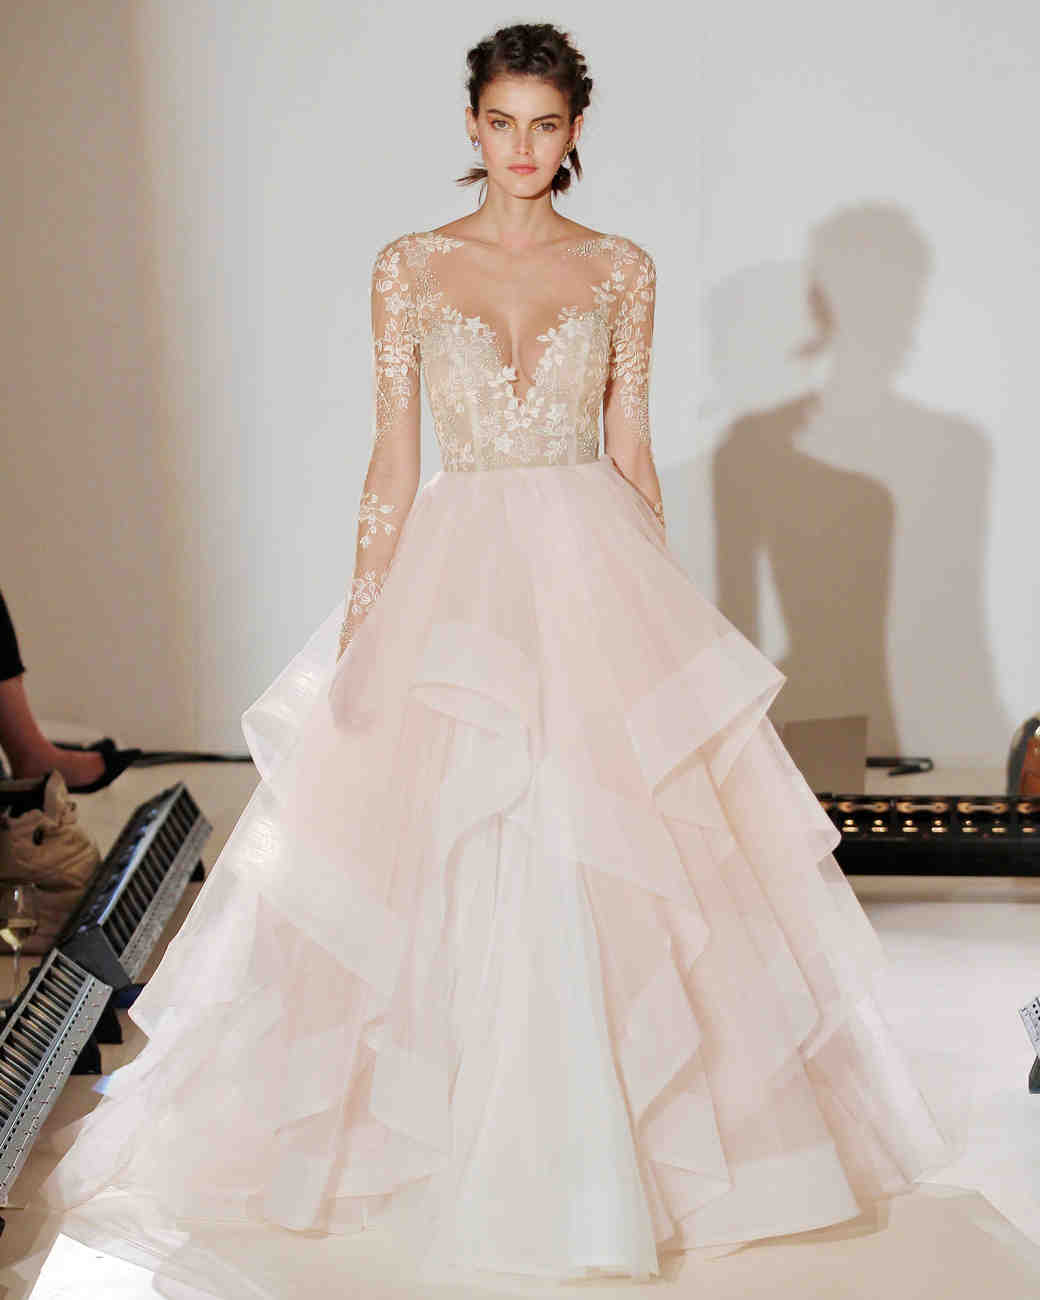 Wedding Gown Trends: The 9 Best Wedding Dress Trends From Bridal Fashion Week